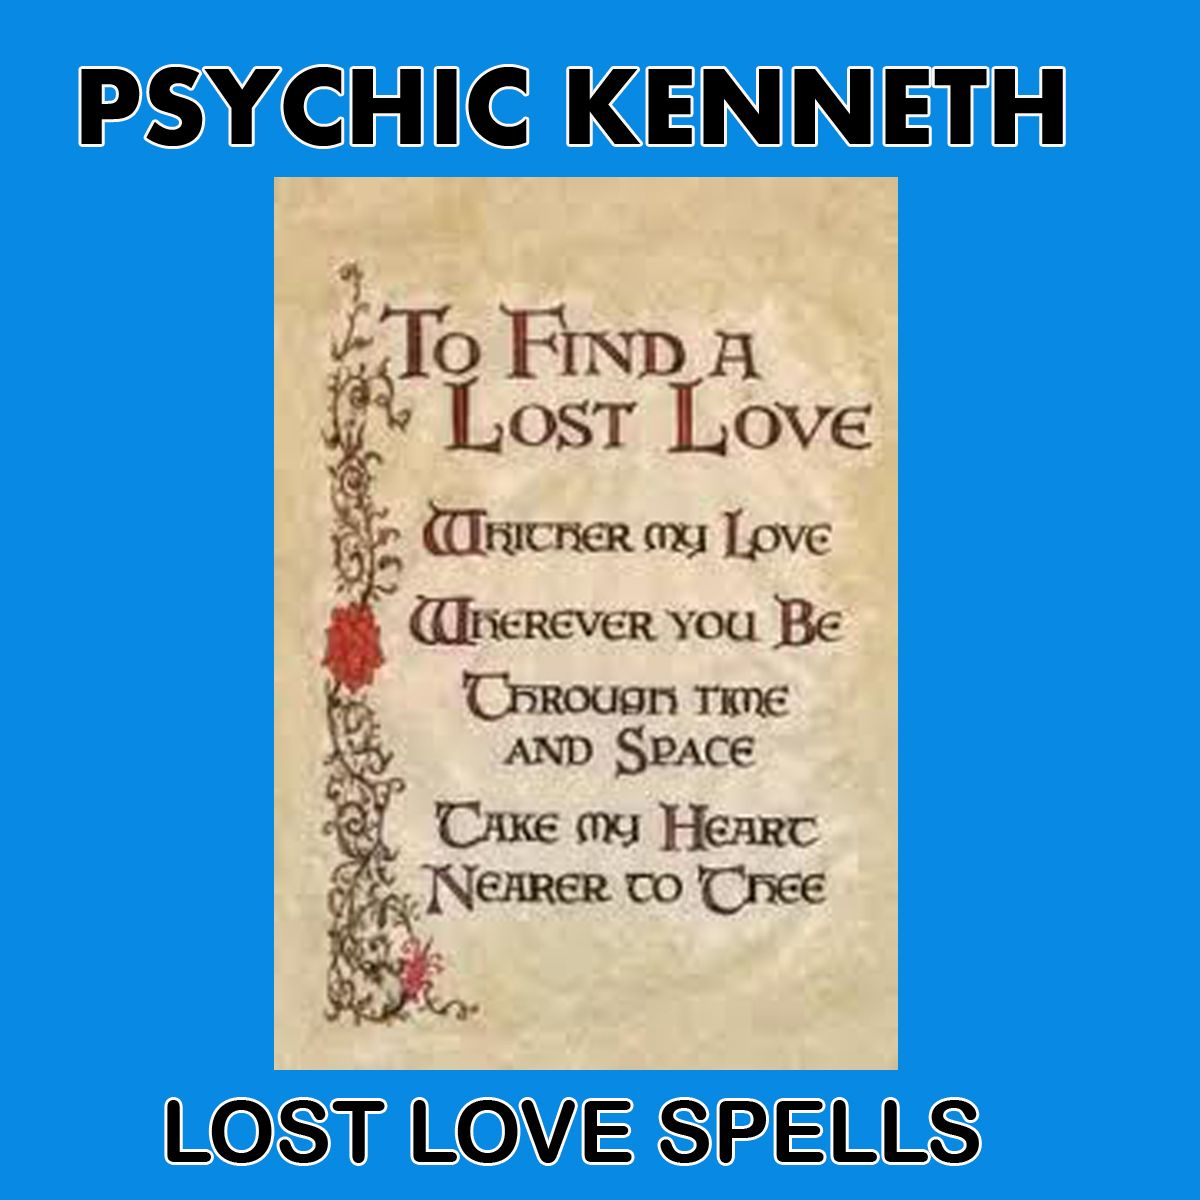 Pin by Baba Kenneth on Leading Psychics Predictions, whatsapp: +